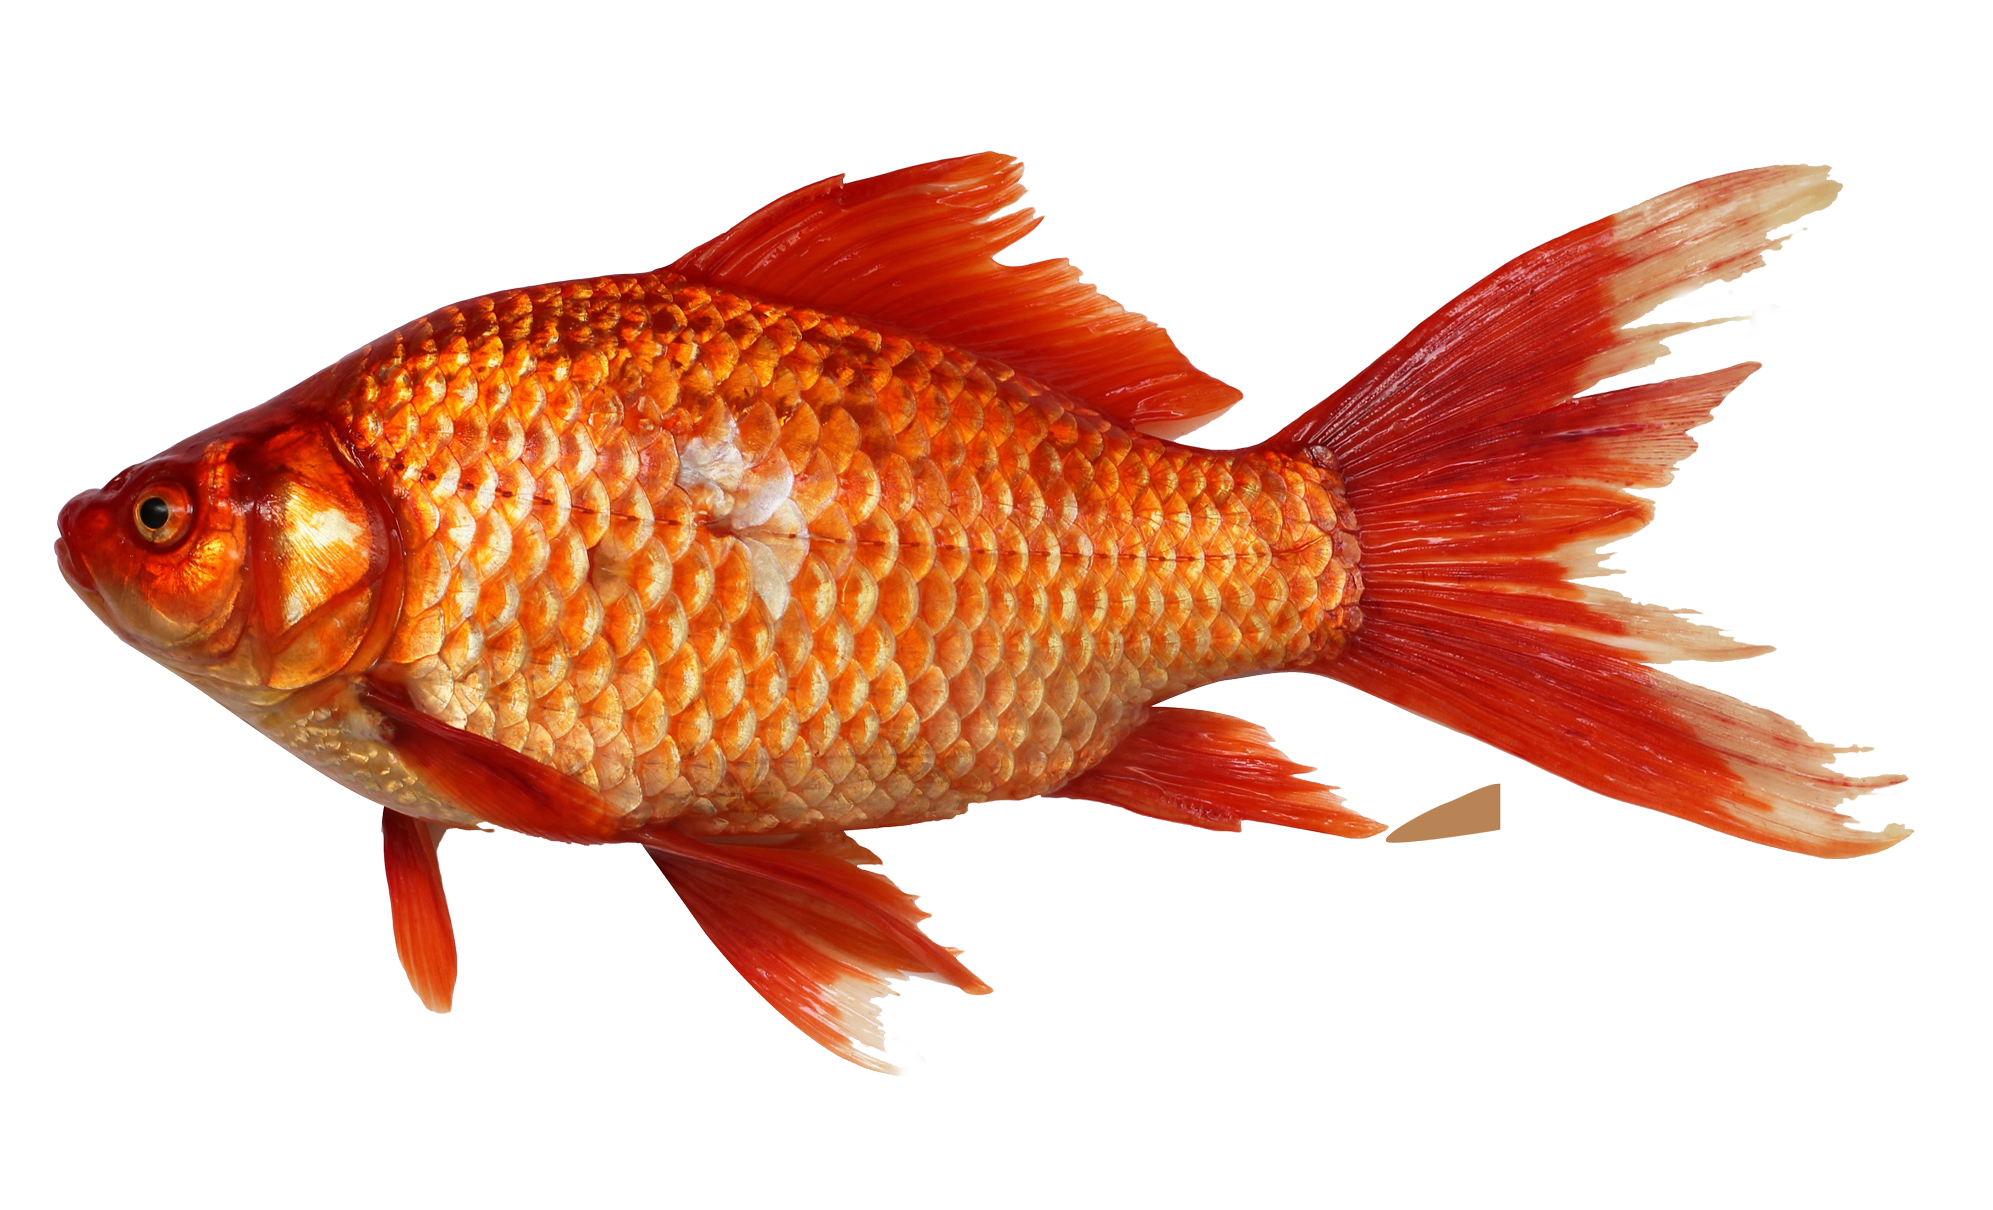 Png image purepng free. Goldfish clipart under sea